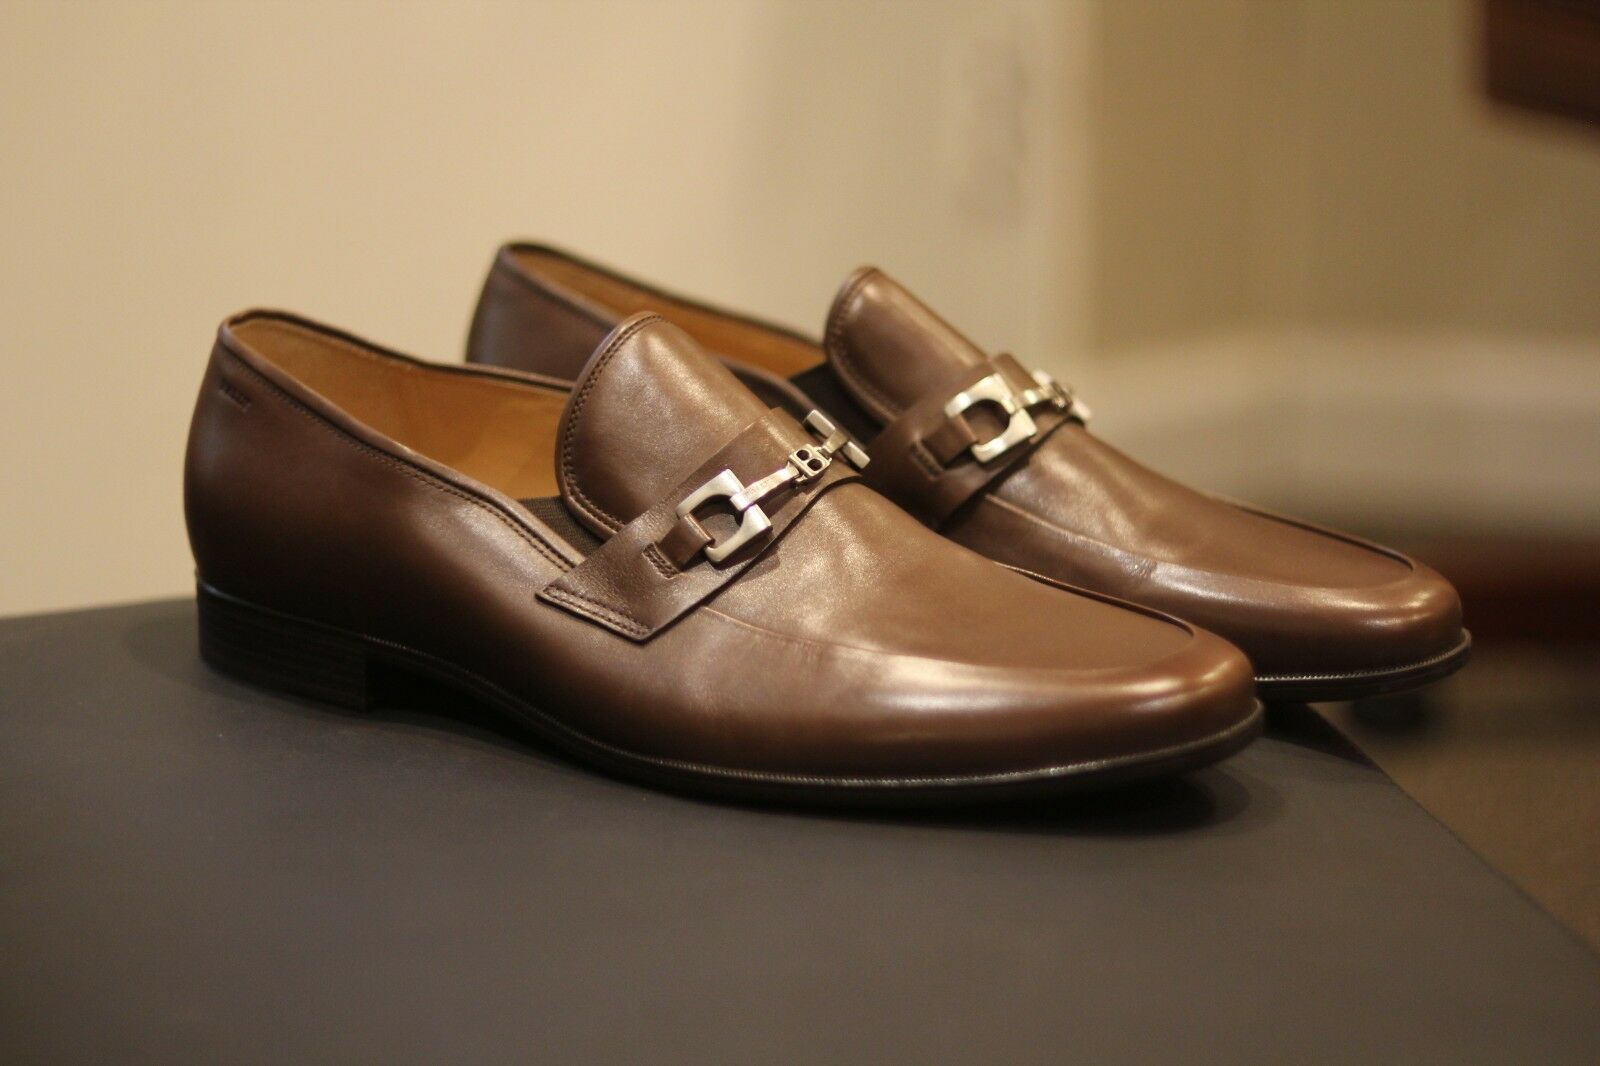 Bally Hakus Styleflex Brown Leather Horsebit Loafers shoes Rare New Size 13 D